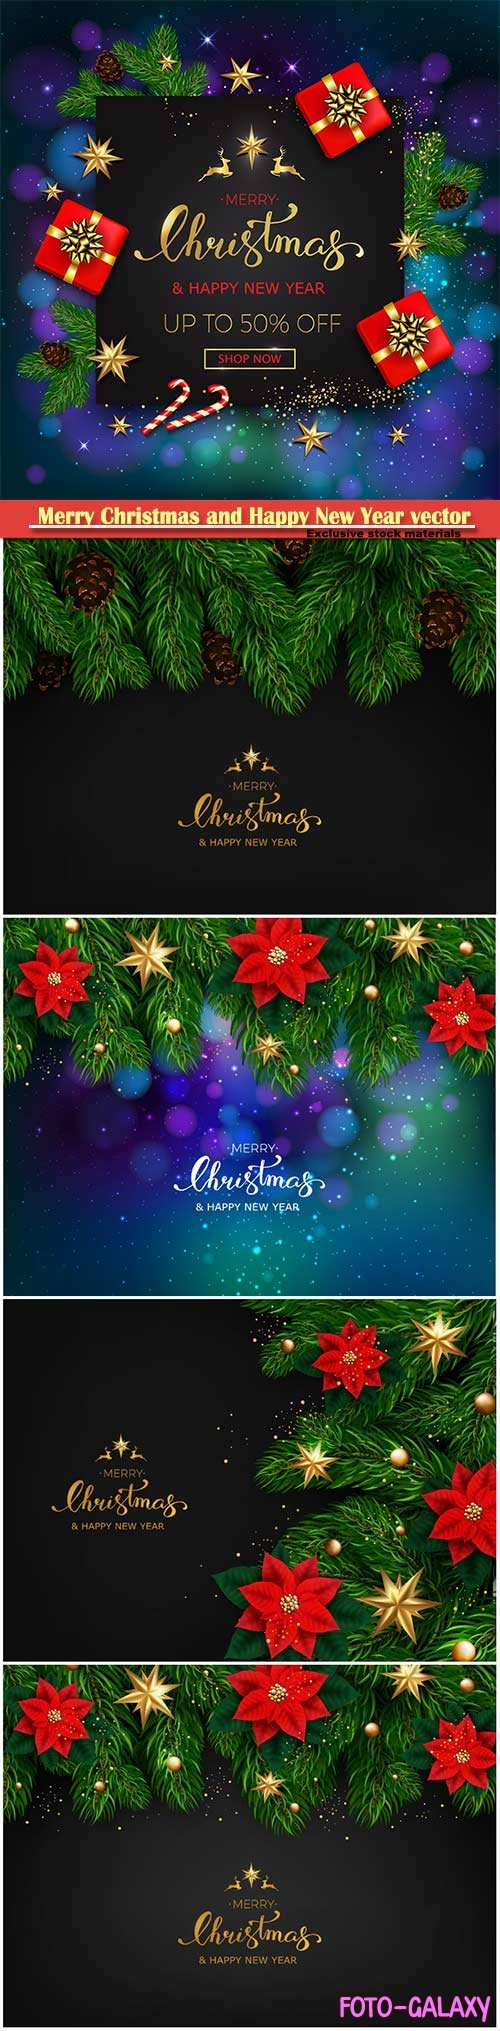 2019 Merry Christmas and Happy New Year vector design # 5